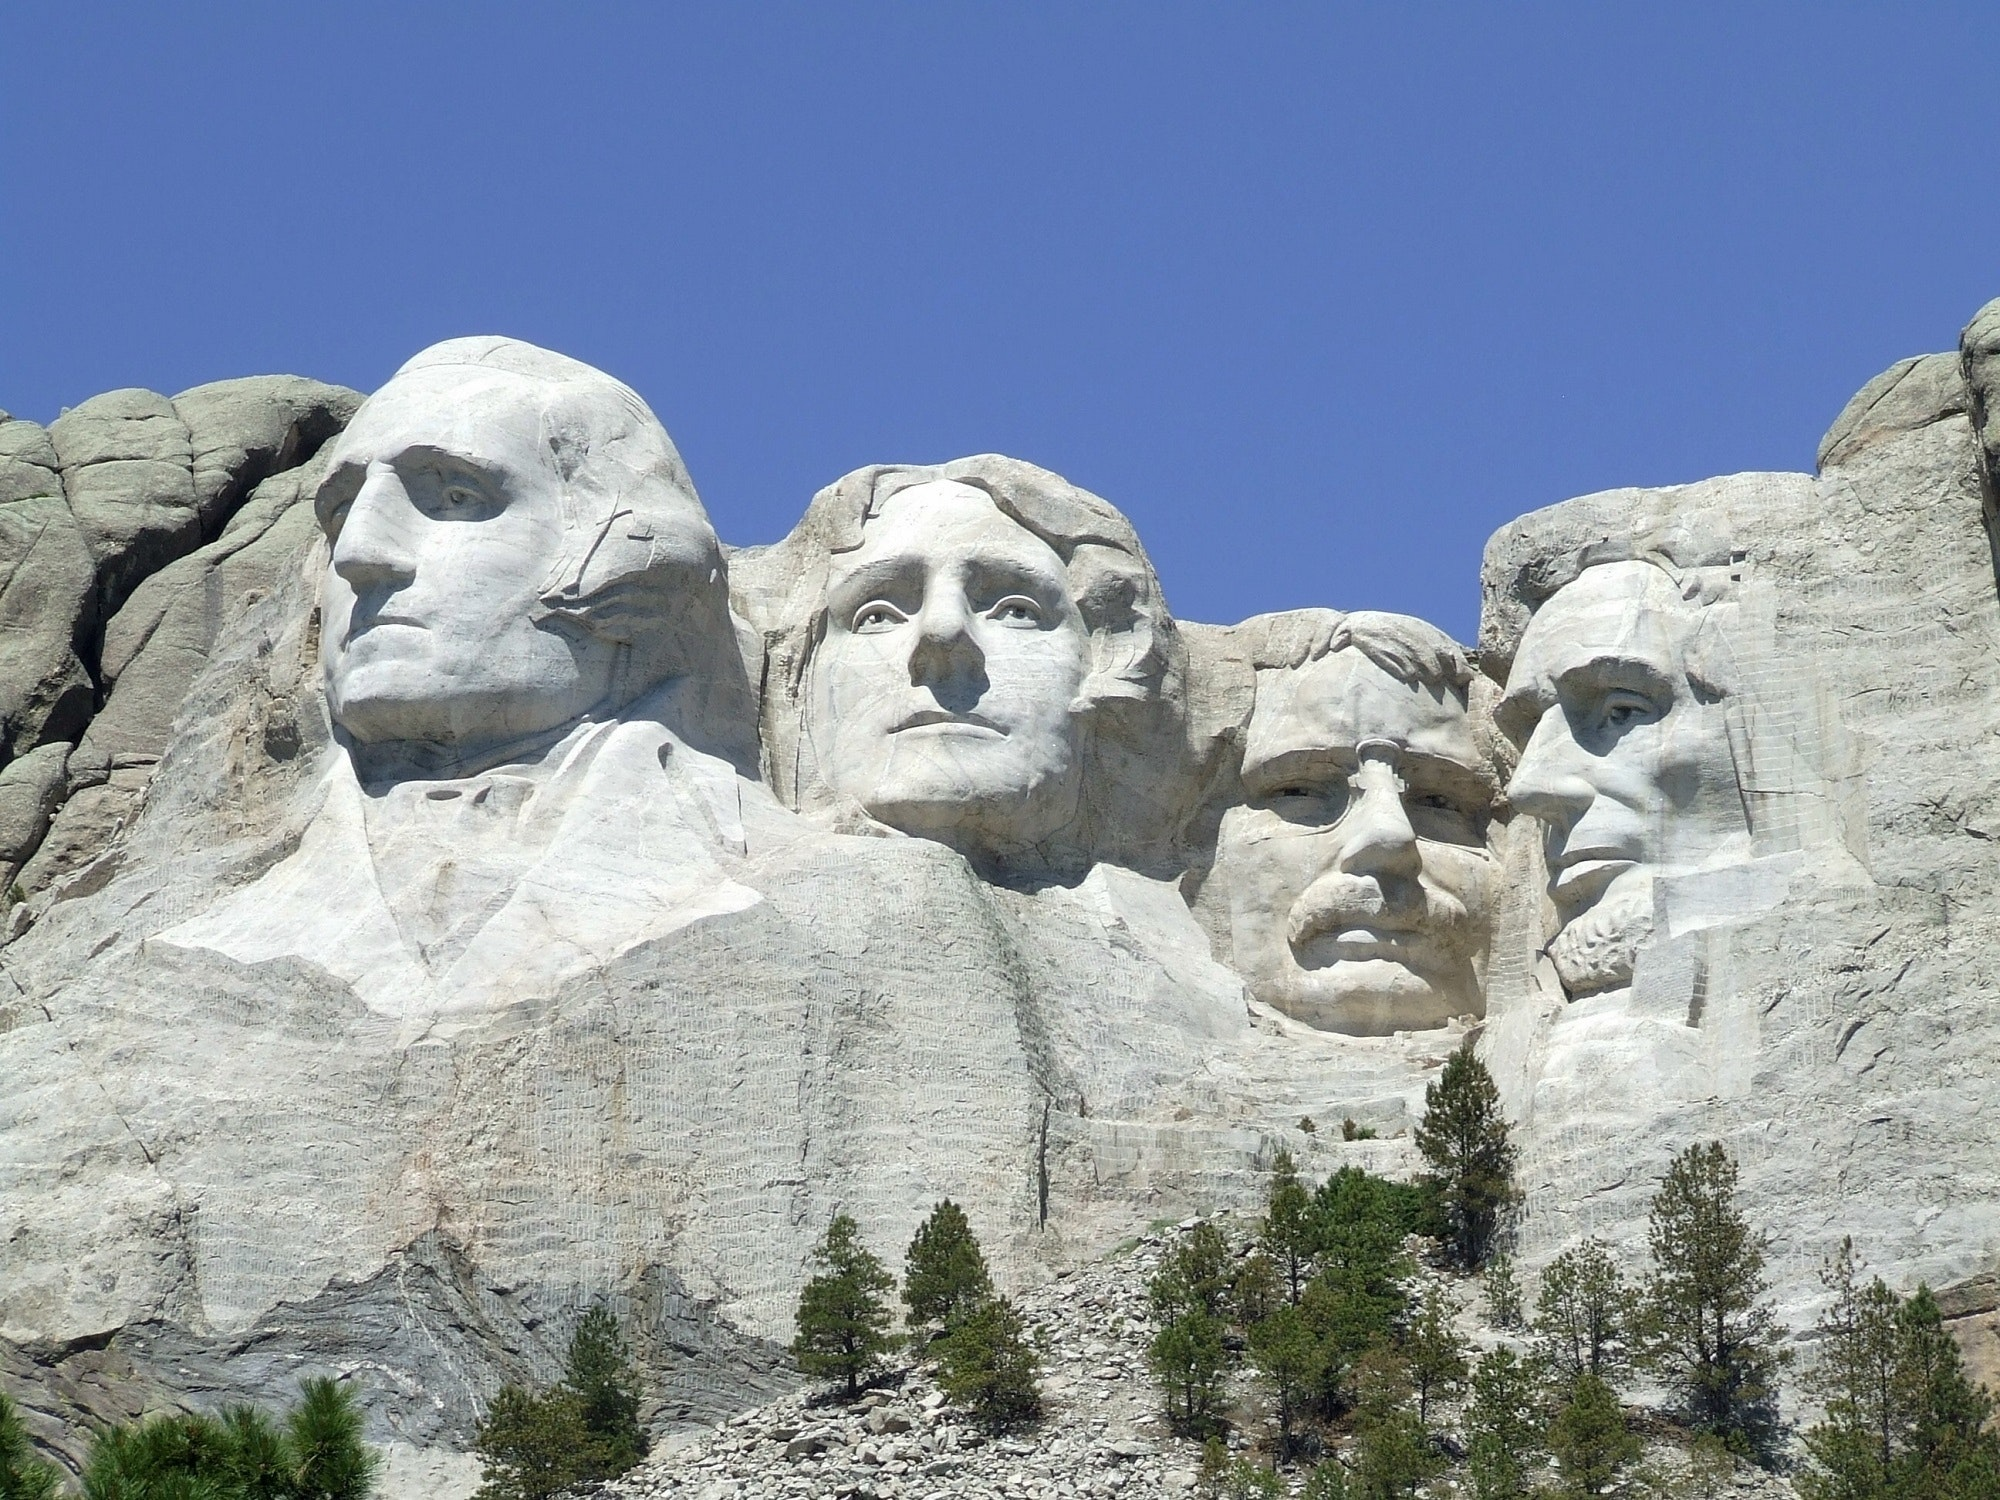 Mt. Rushmore, Black Hills, South Dakota